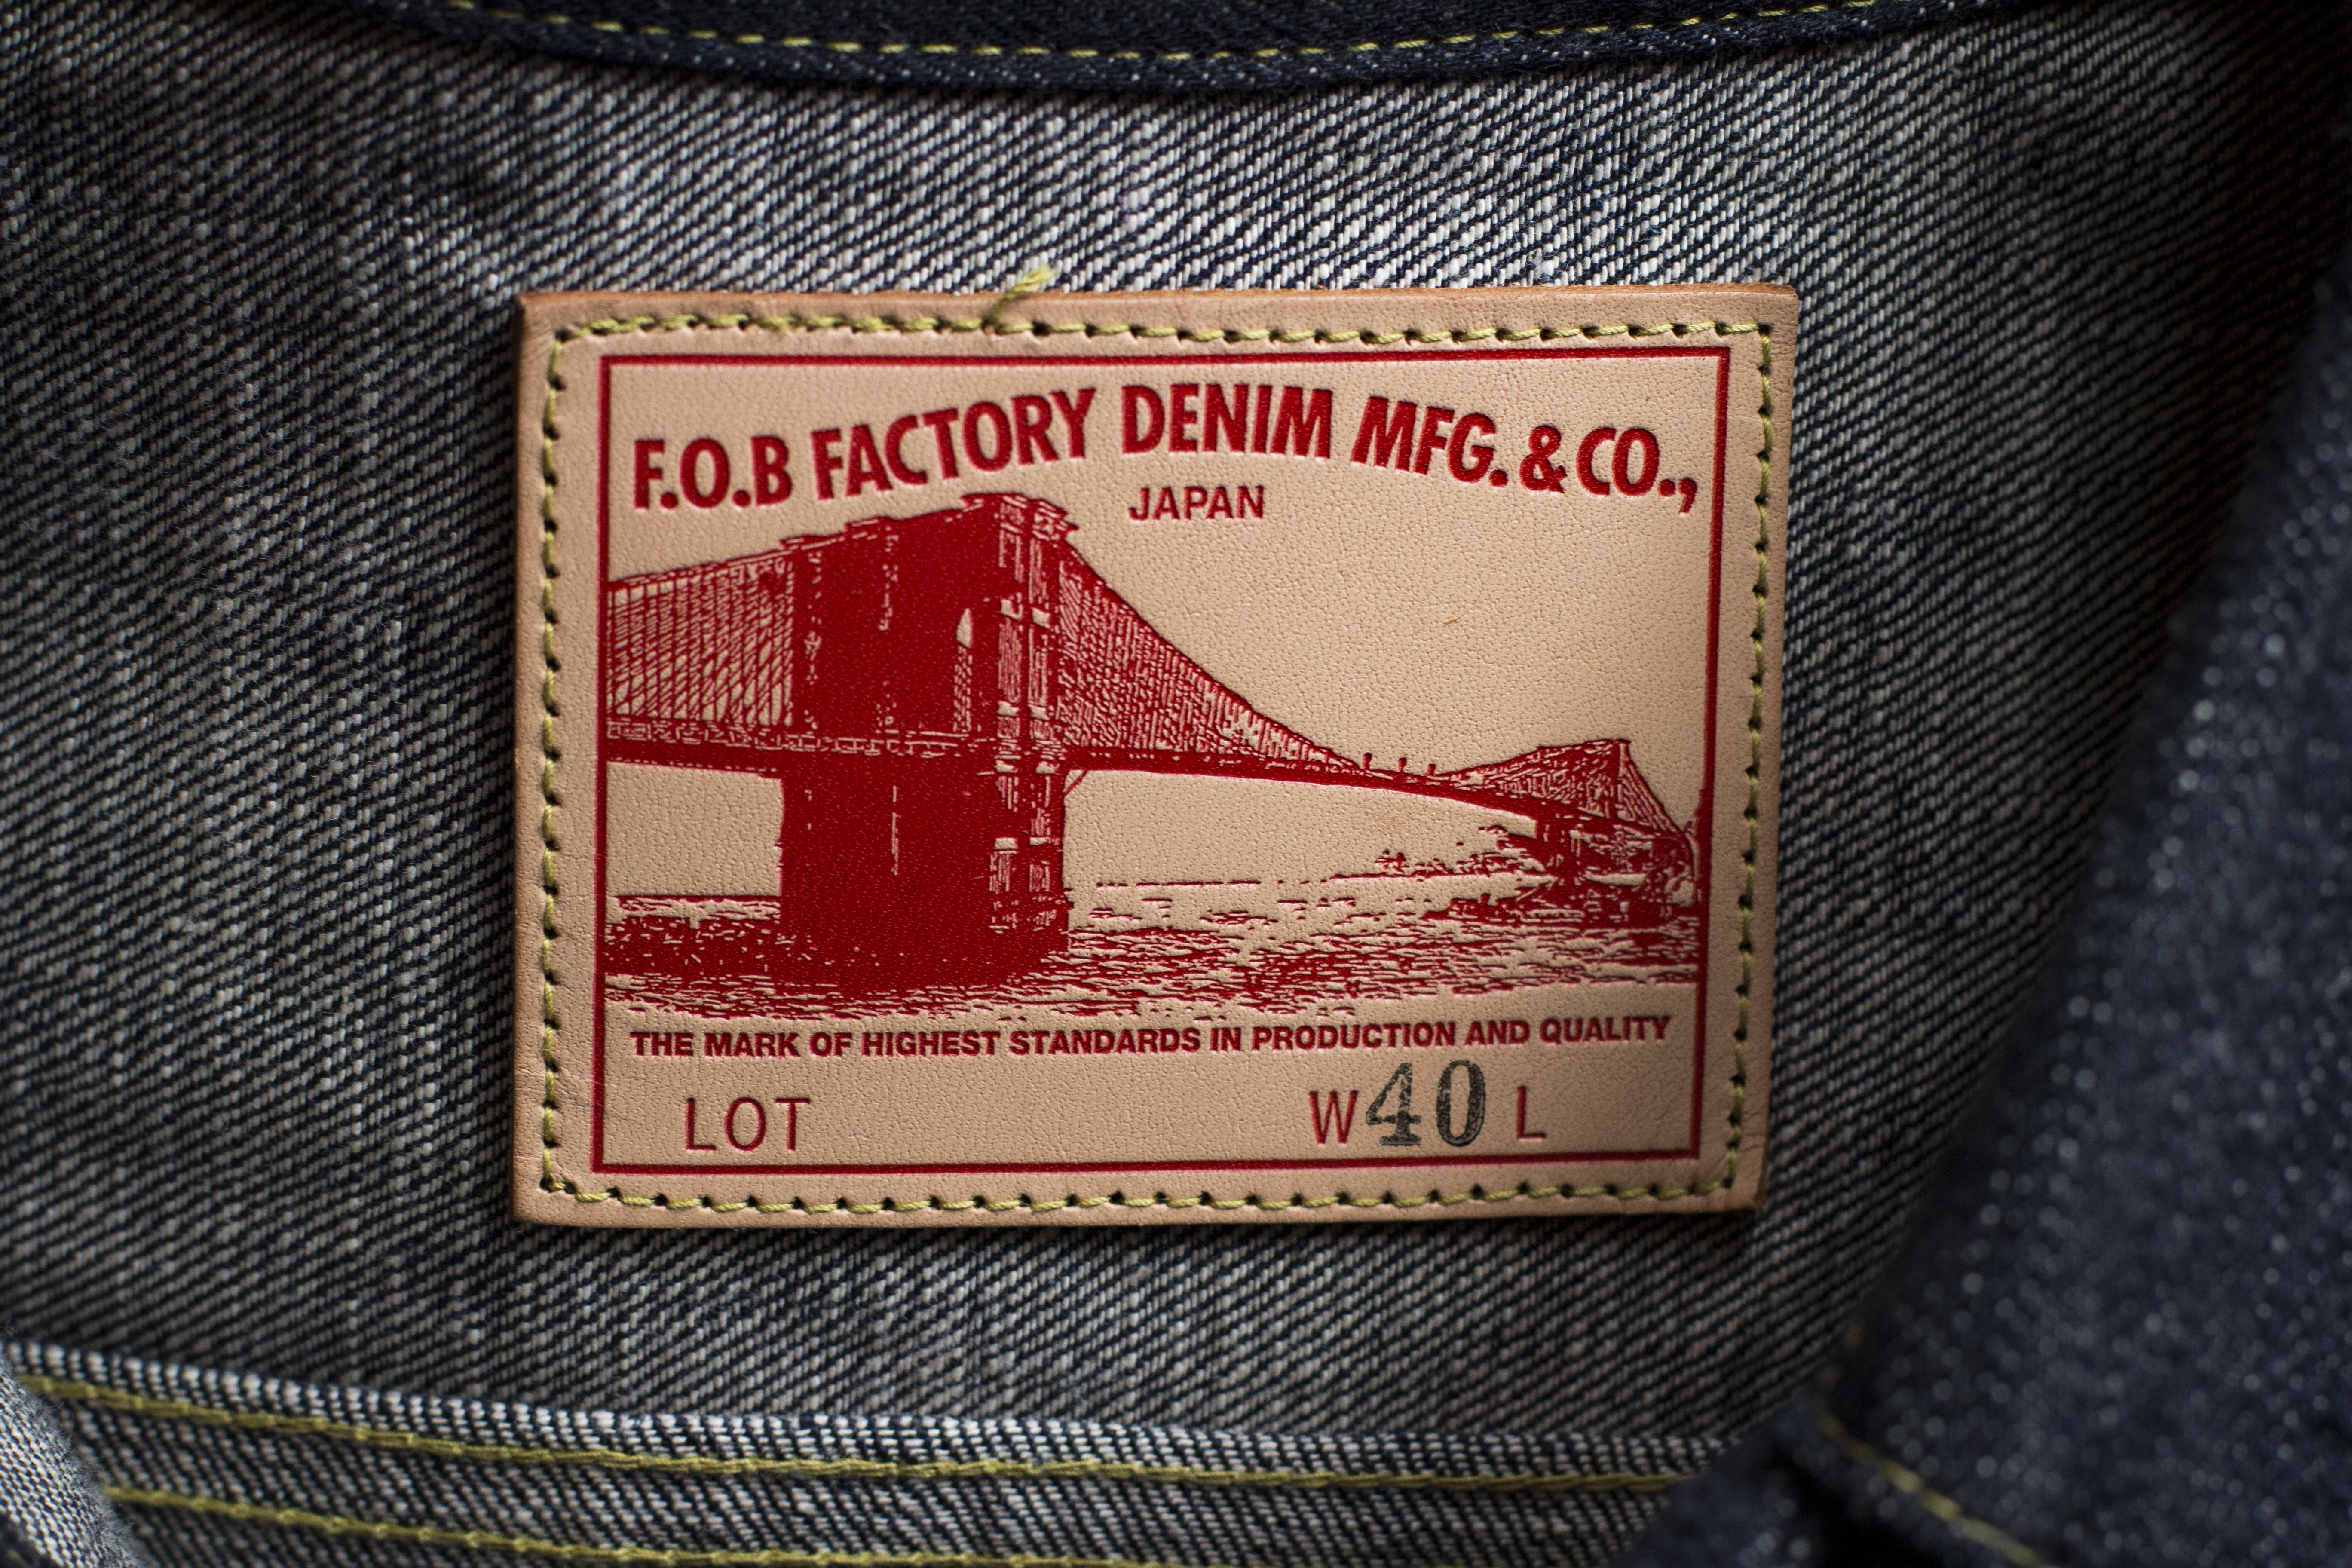 0204f8915e7 First Impressions: The denim used is absolutely undeniable and going to be  hard to compete with in my rotation. The fits on both pieces are perfect  for me.